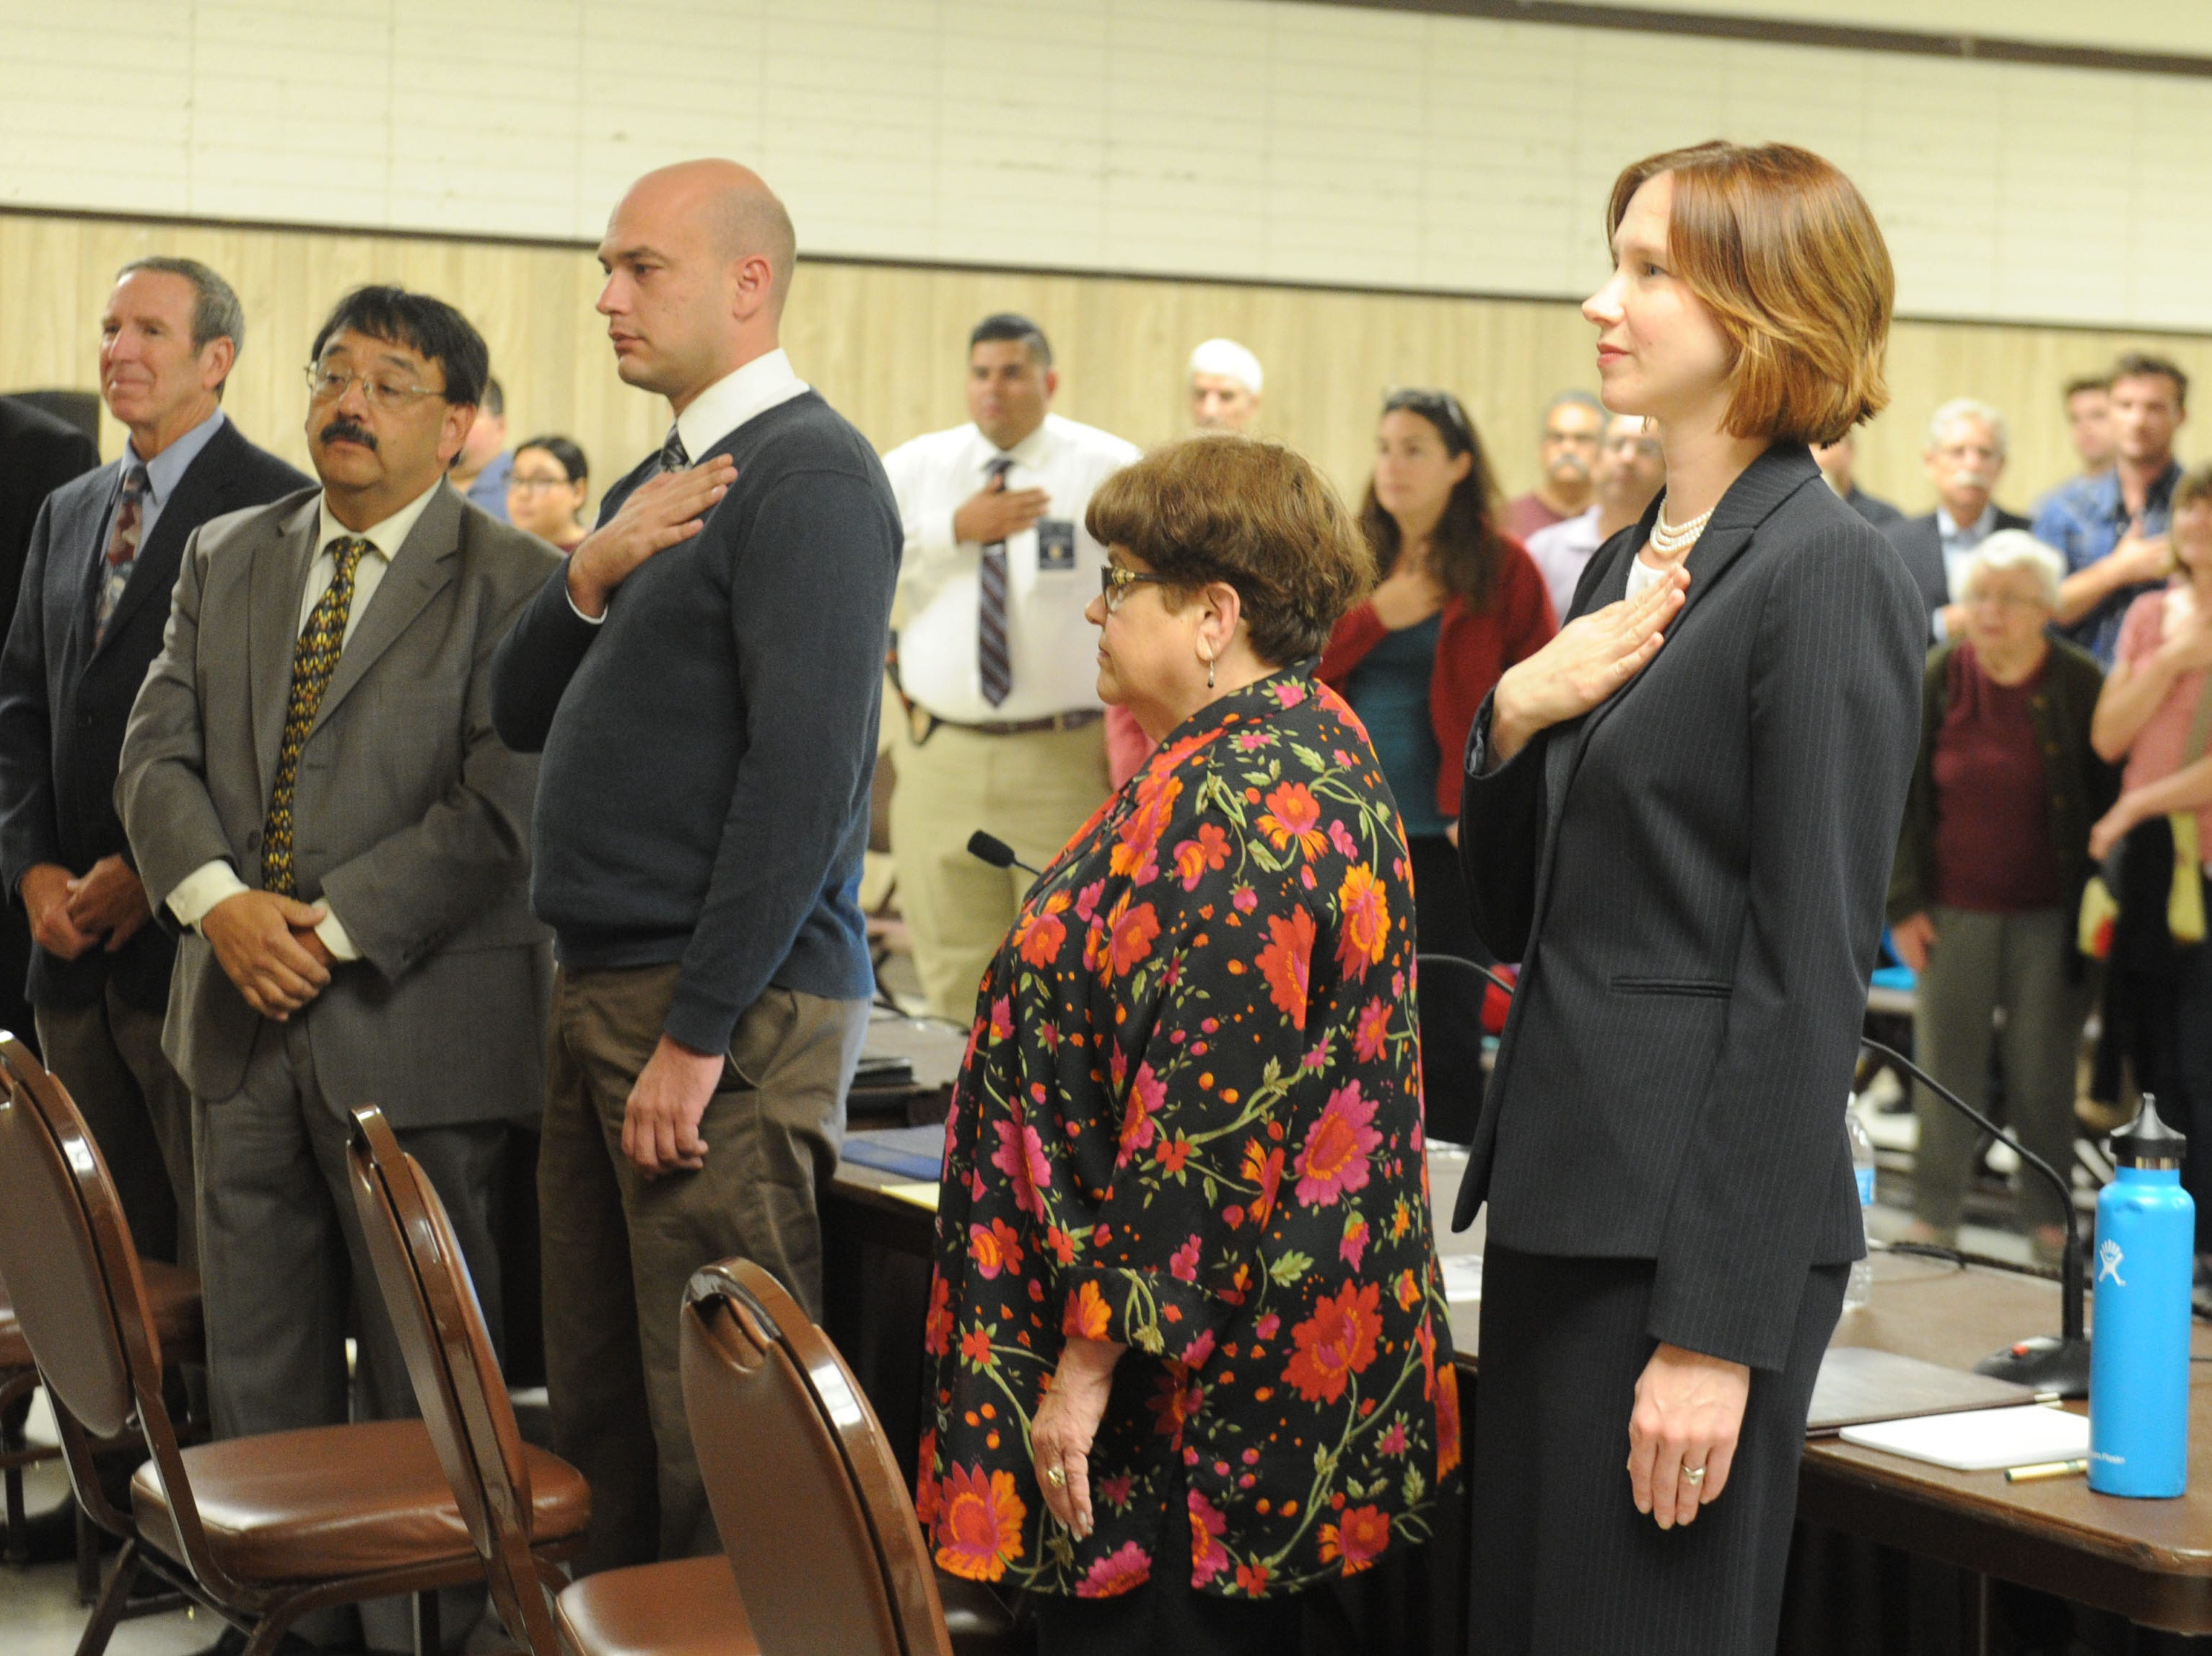 From left, Richard Araiza, Andy Sobel, Carlos Juarez, Aaron Dunkel, Ginger Gherardi and Jenny Crosswhite stand for the Pledge of Allegiance at the beginning of a Santa Paula City Council candidates forum.